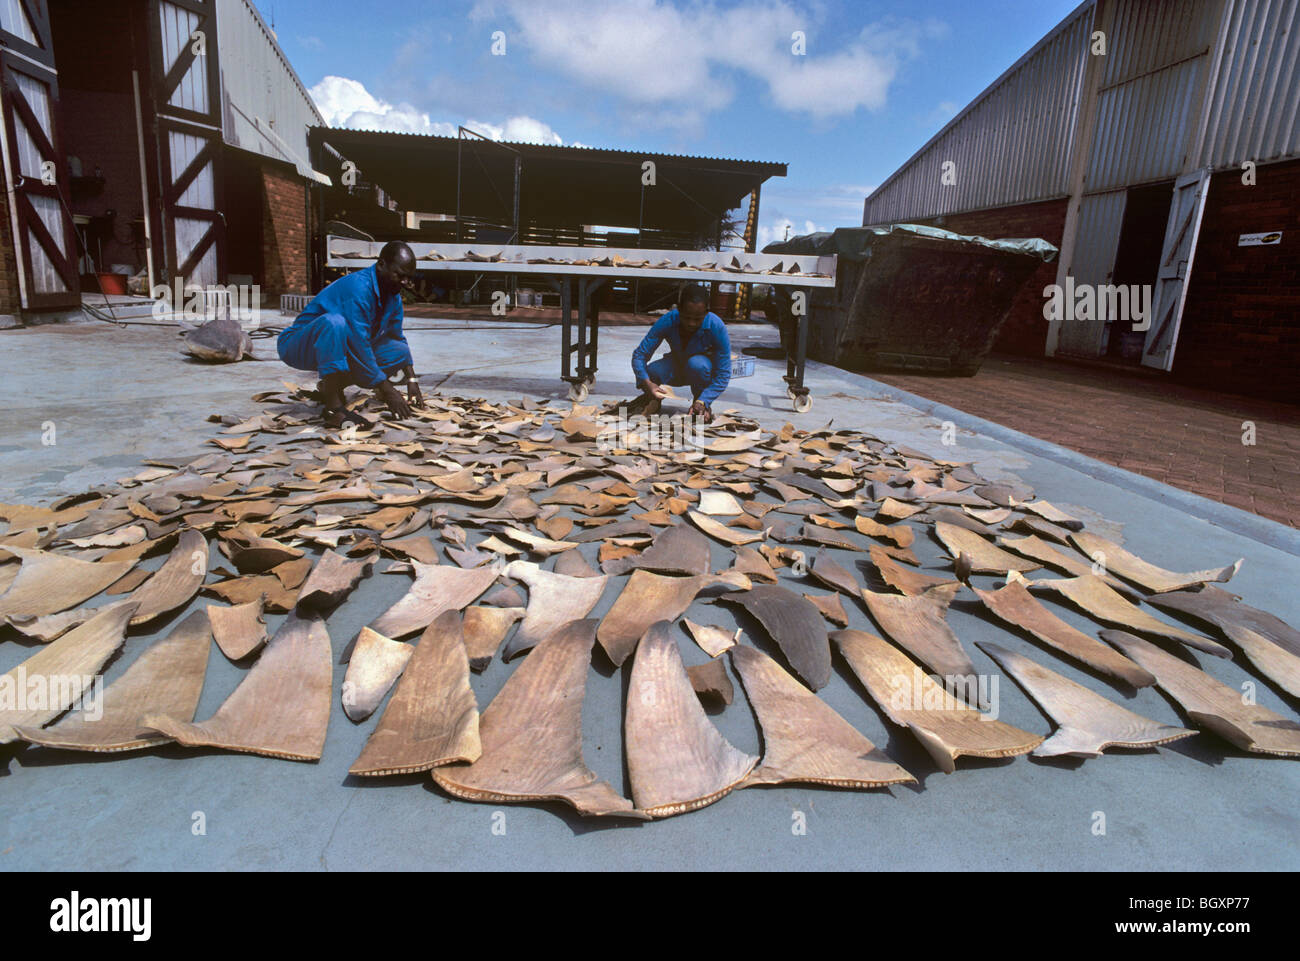 Drying Shark fins to Hong Kong for Shark fin soup and medicine. - Stock Image